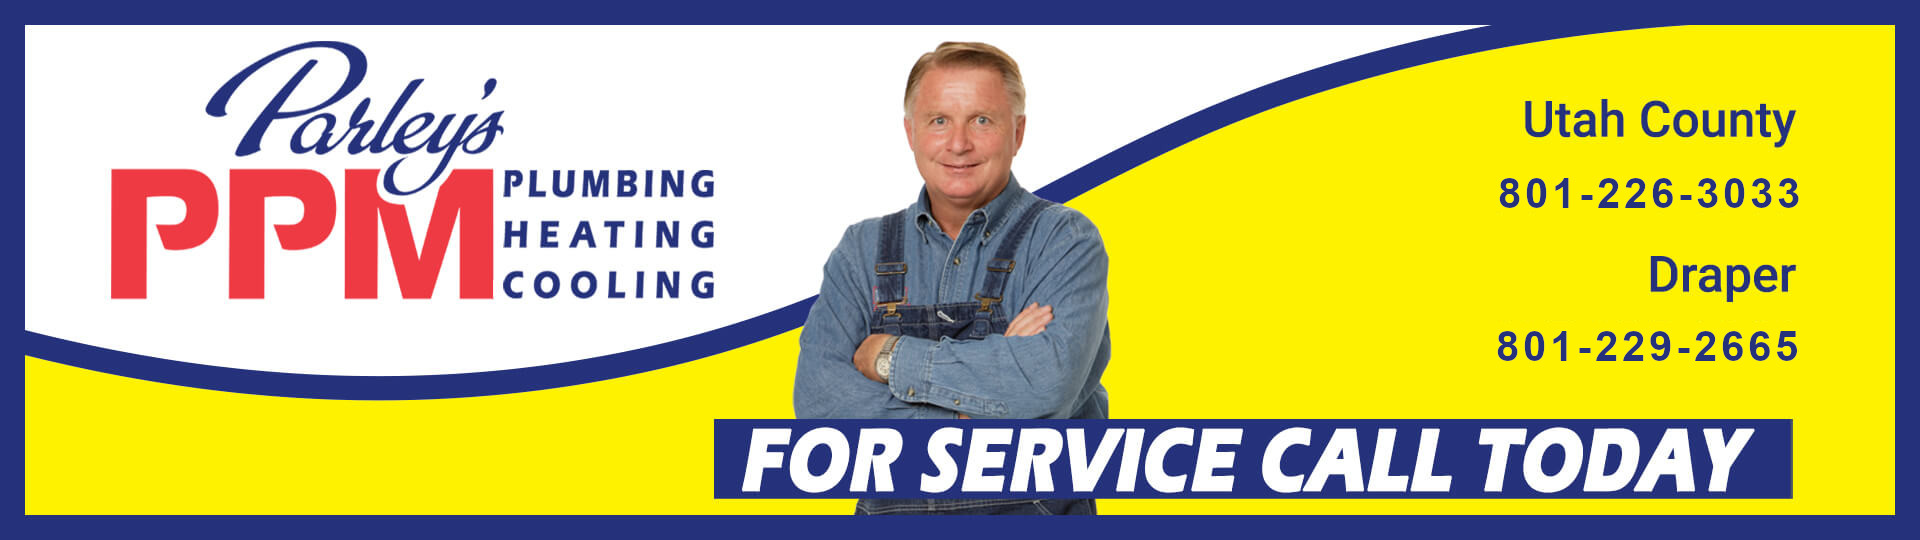 Parley's PPM Plumbing, Heating & Cooling